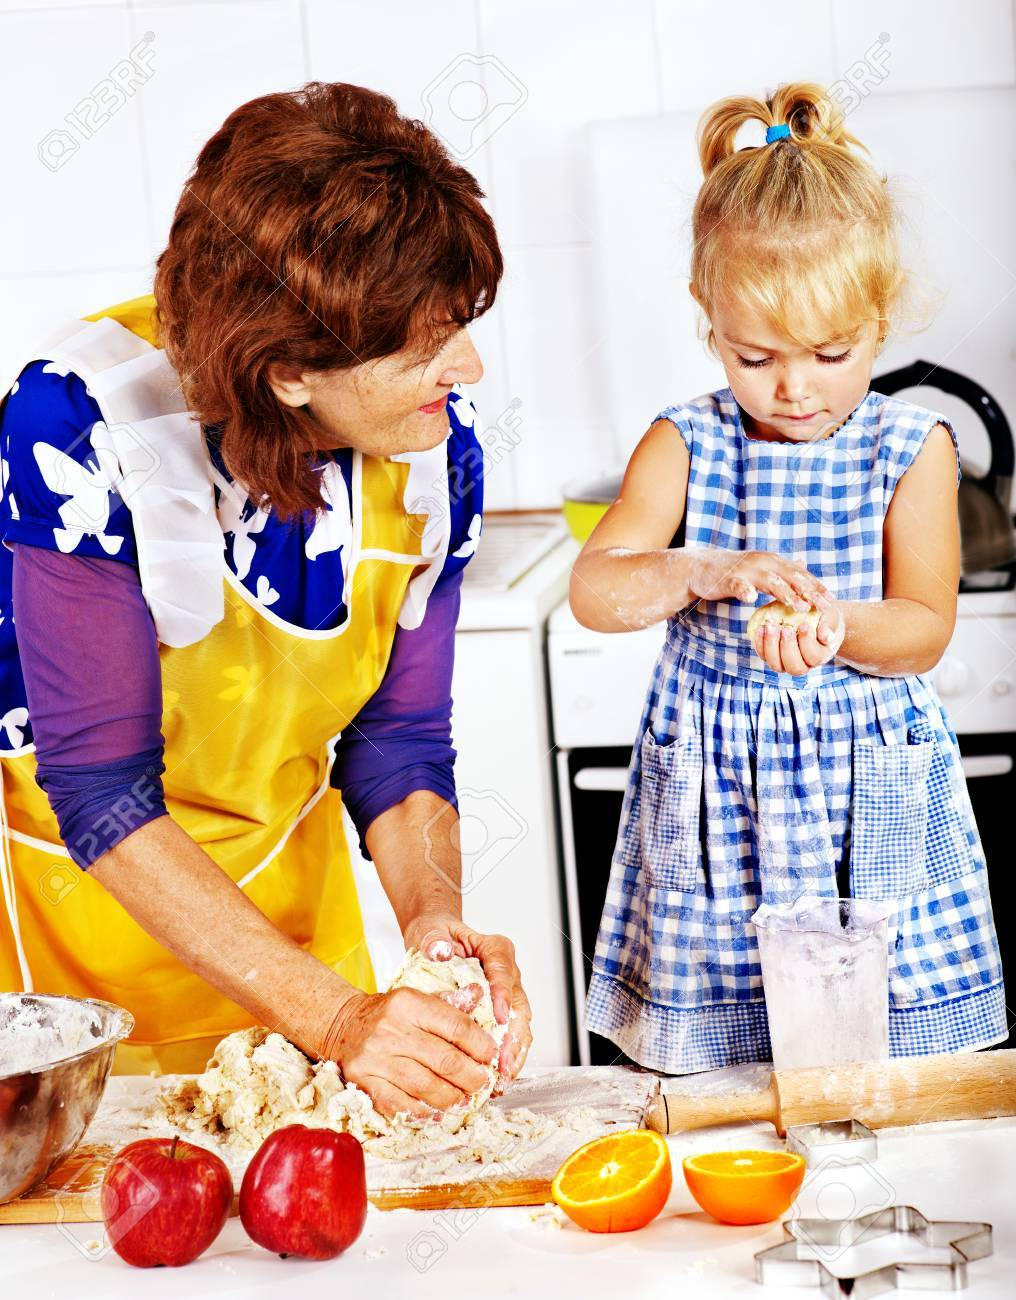 Grandmother and granddaughter baking cookies. Stock Photo - 22528669